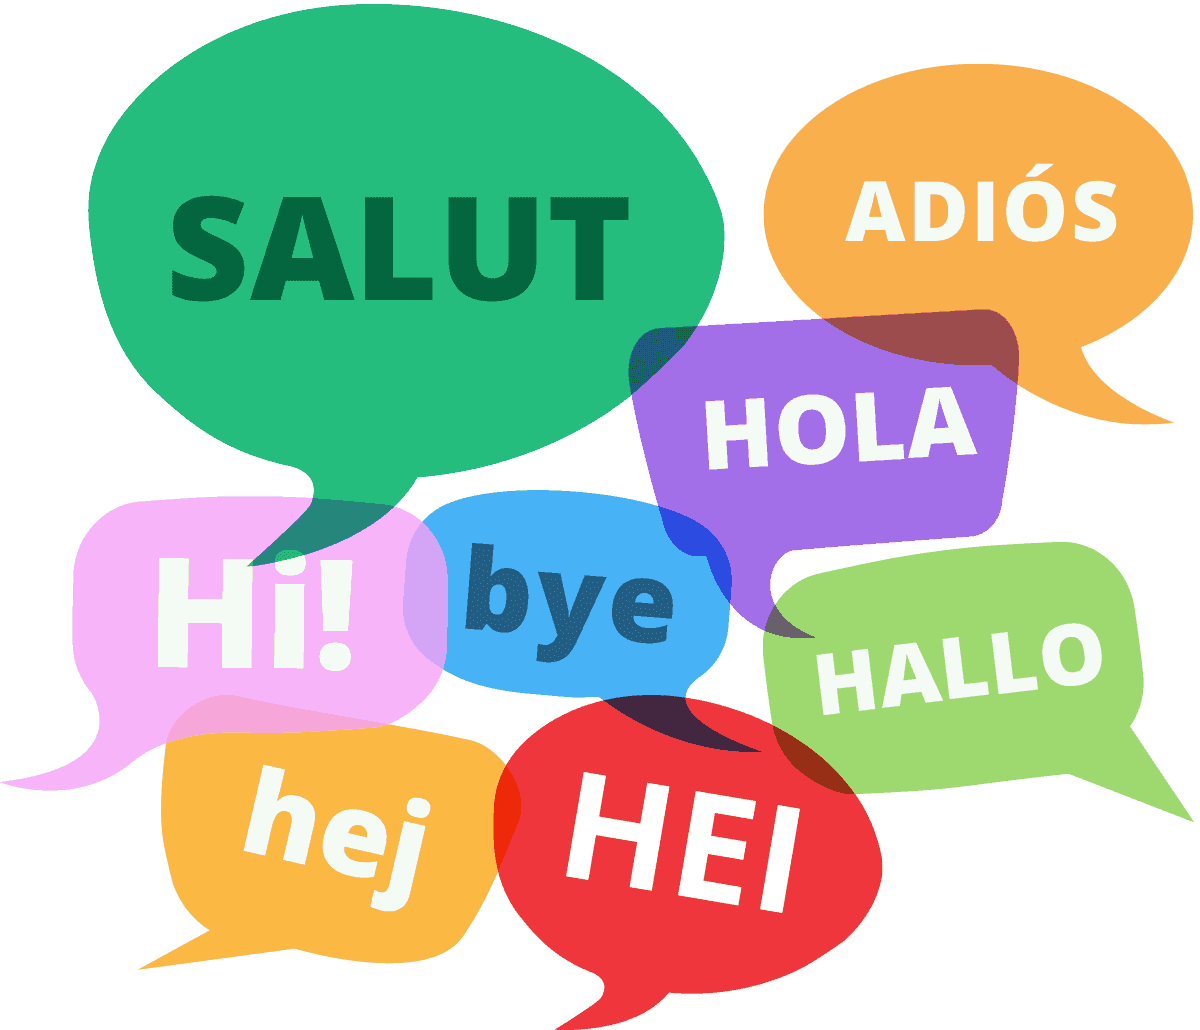 5 techniques to learn any foreign language